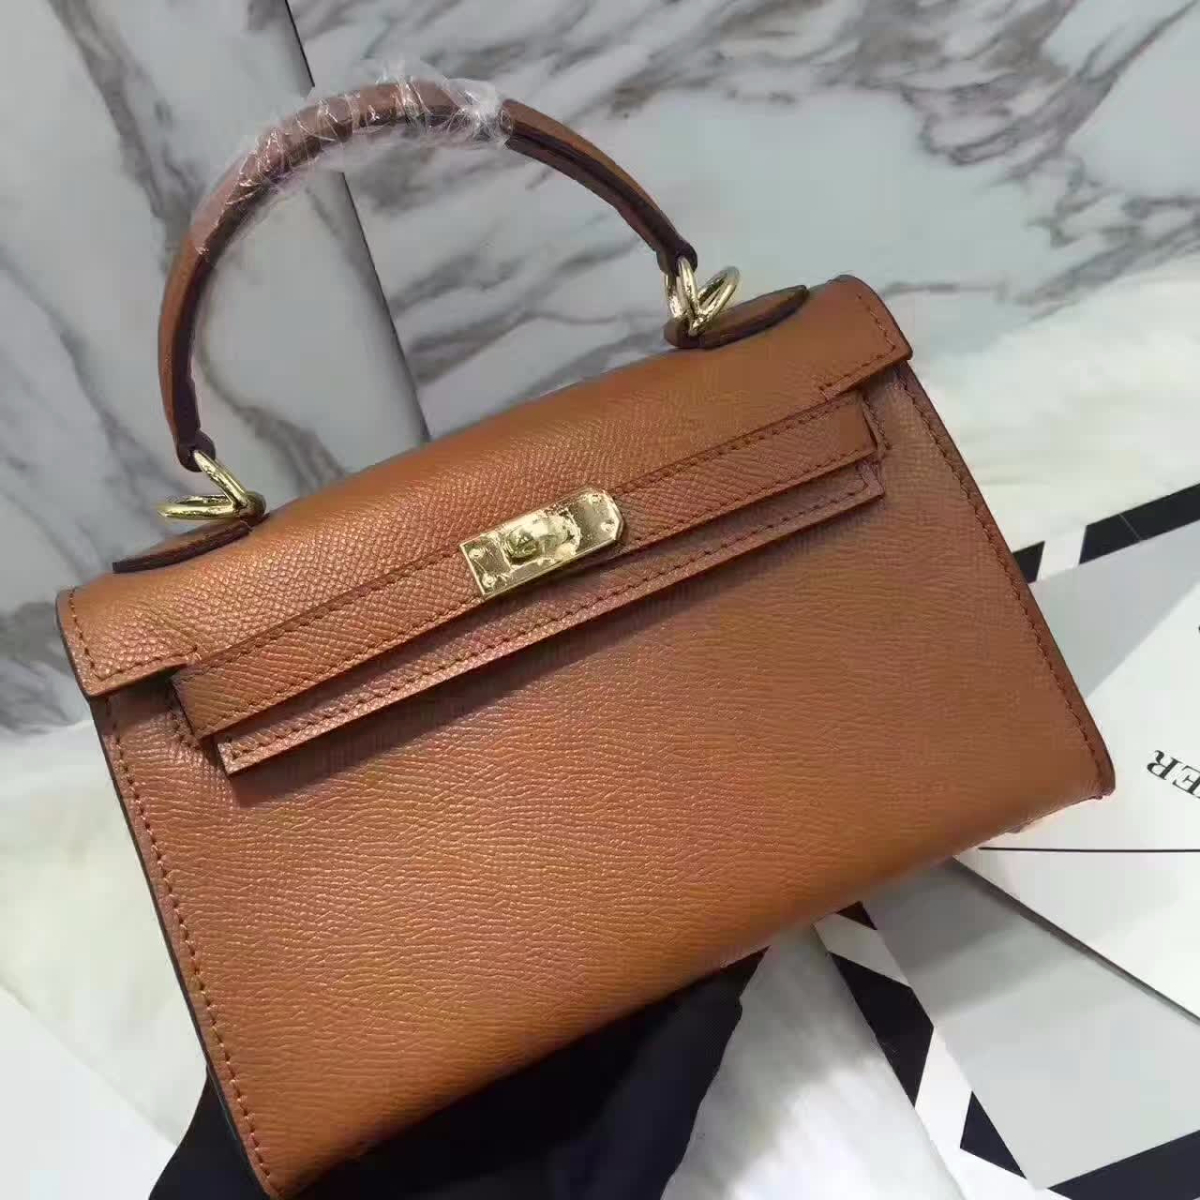 Hermes Mini Kelly Bag hhem588_0